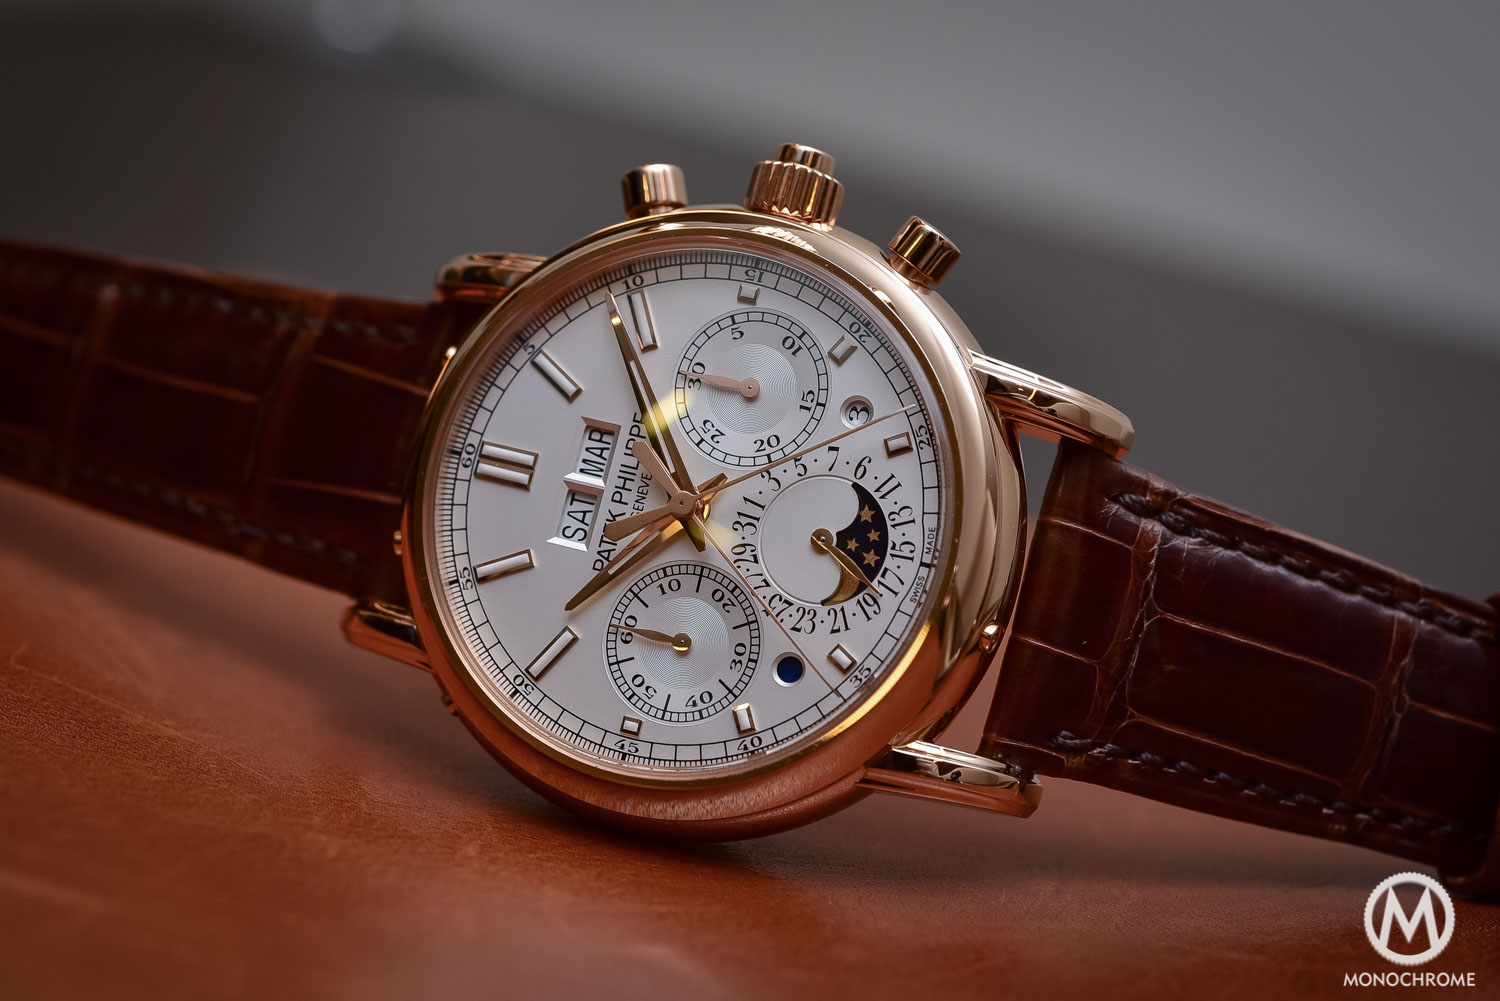 Patek Philippe 5204R Split-Seconds Chronograph Perpetual Calendar - Baselworld 2016 - 4